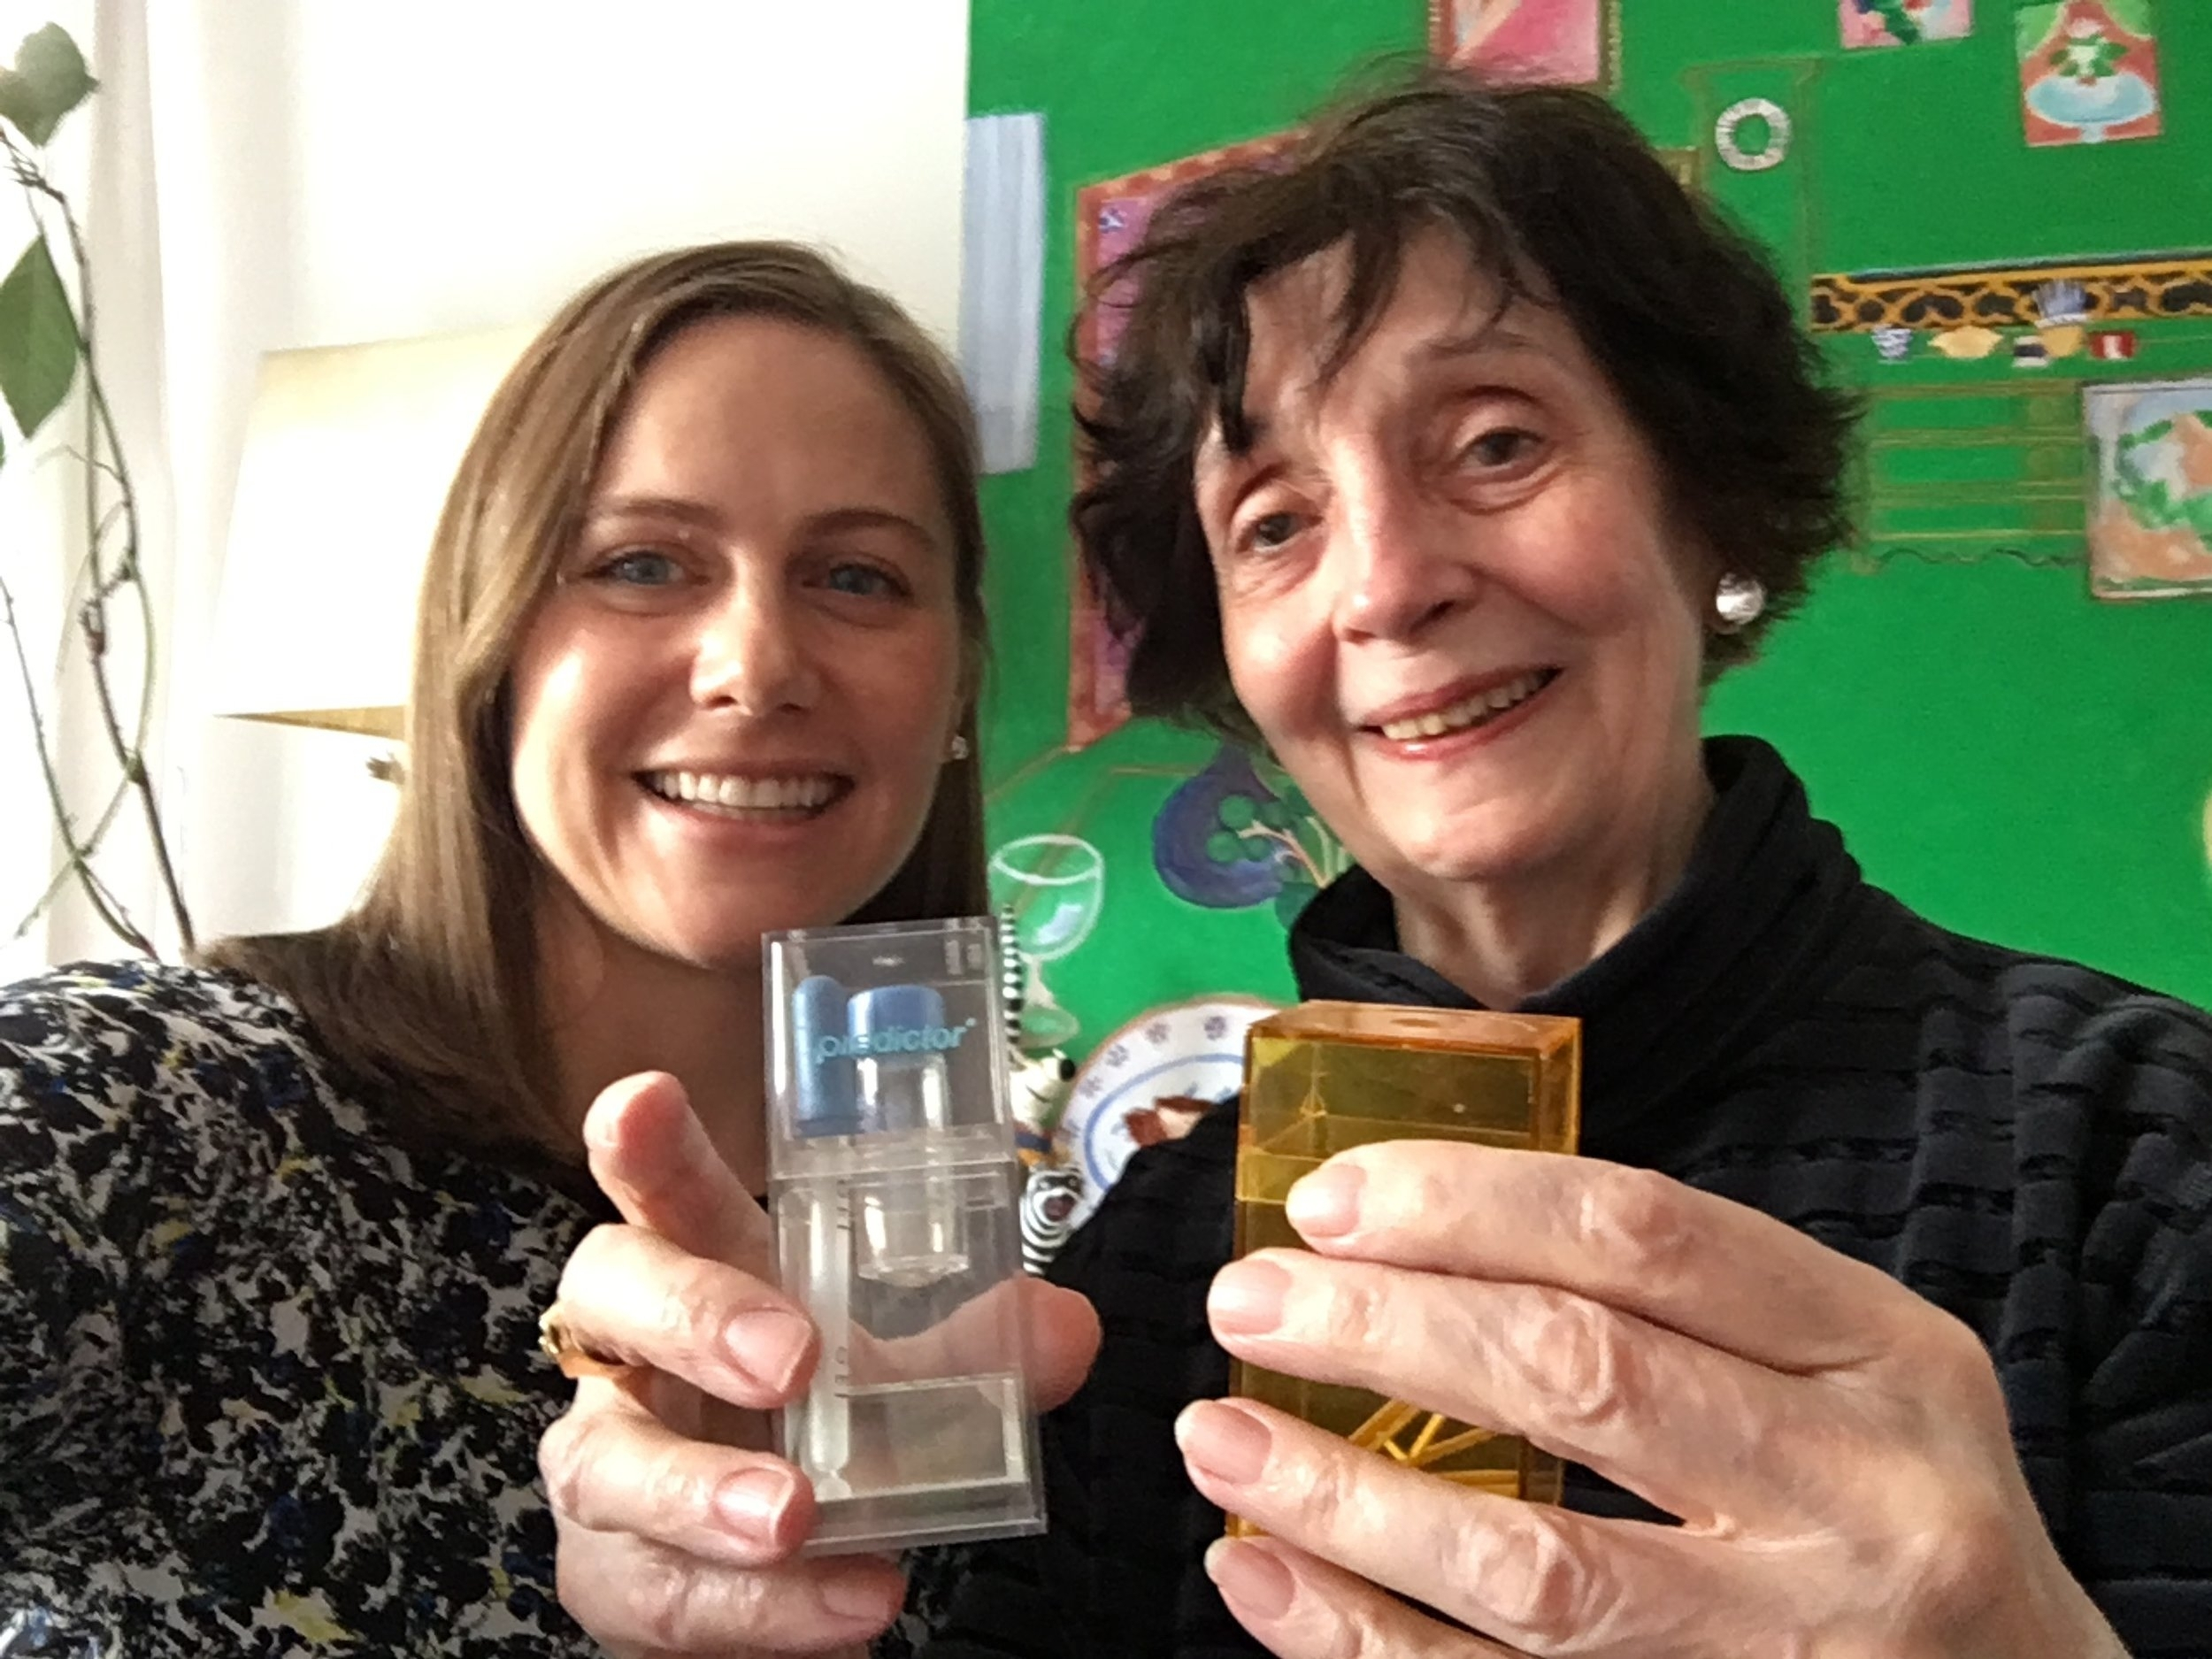 Interviewing Meg Crane who is holding the prototype of the first home pregnancy test.